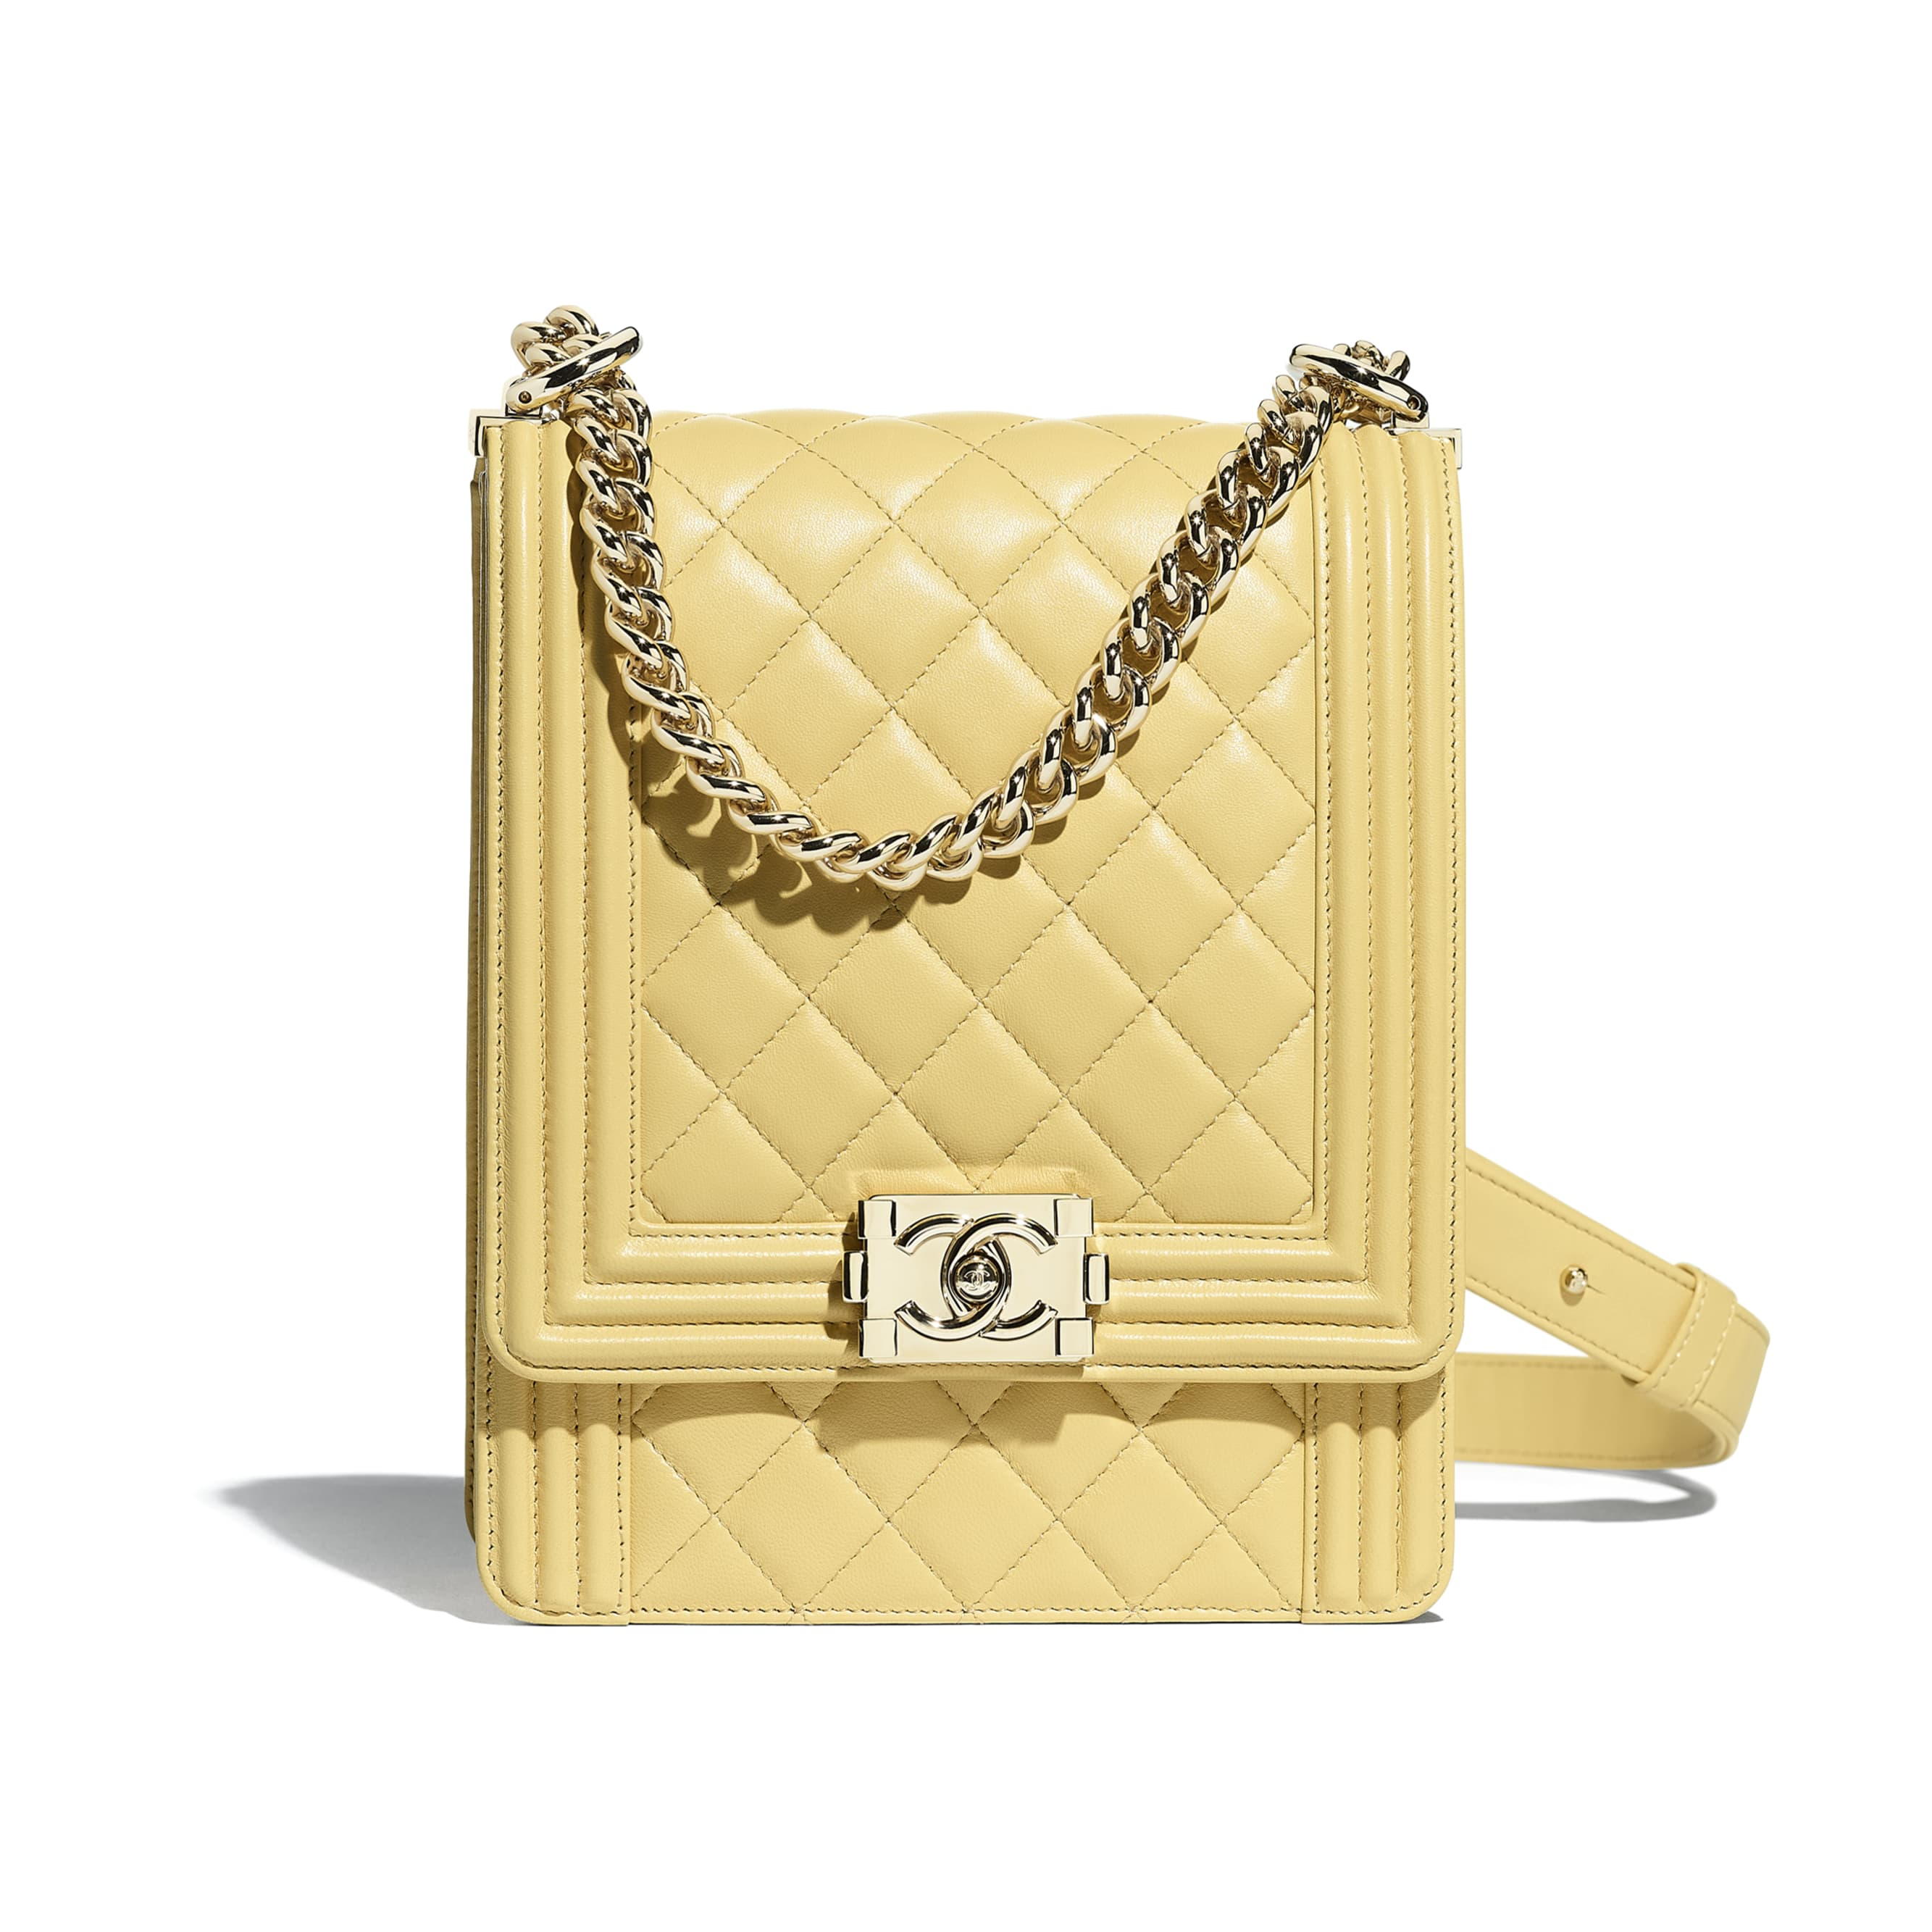 BOY CHANEL Handbag - Yellow - Calfskin & Gold-Tone Metal - Default view - see standard sized version